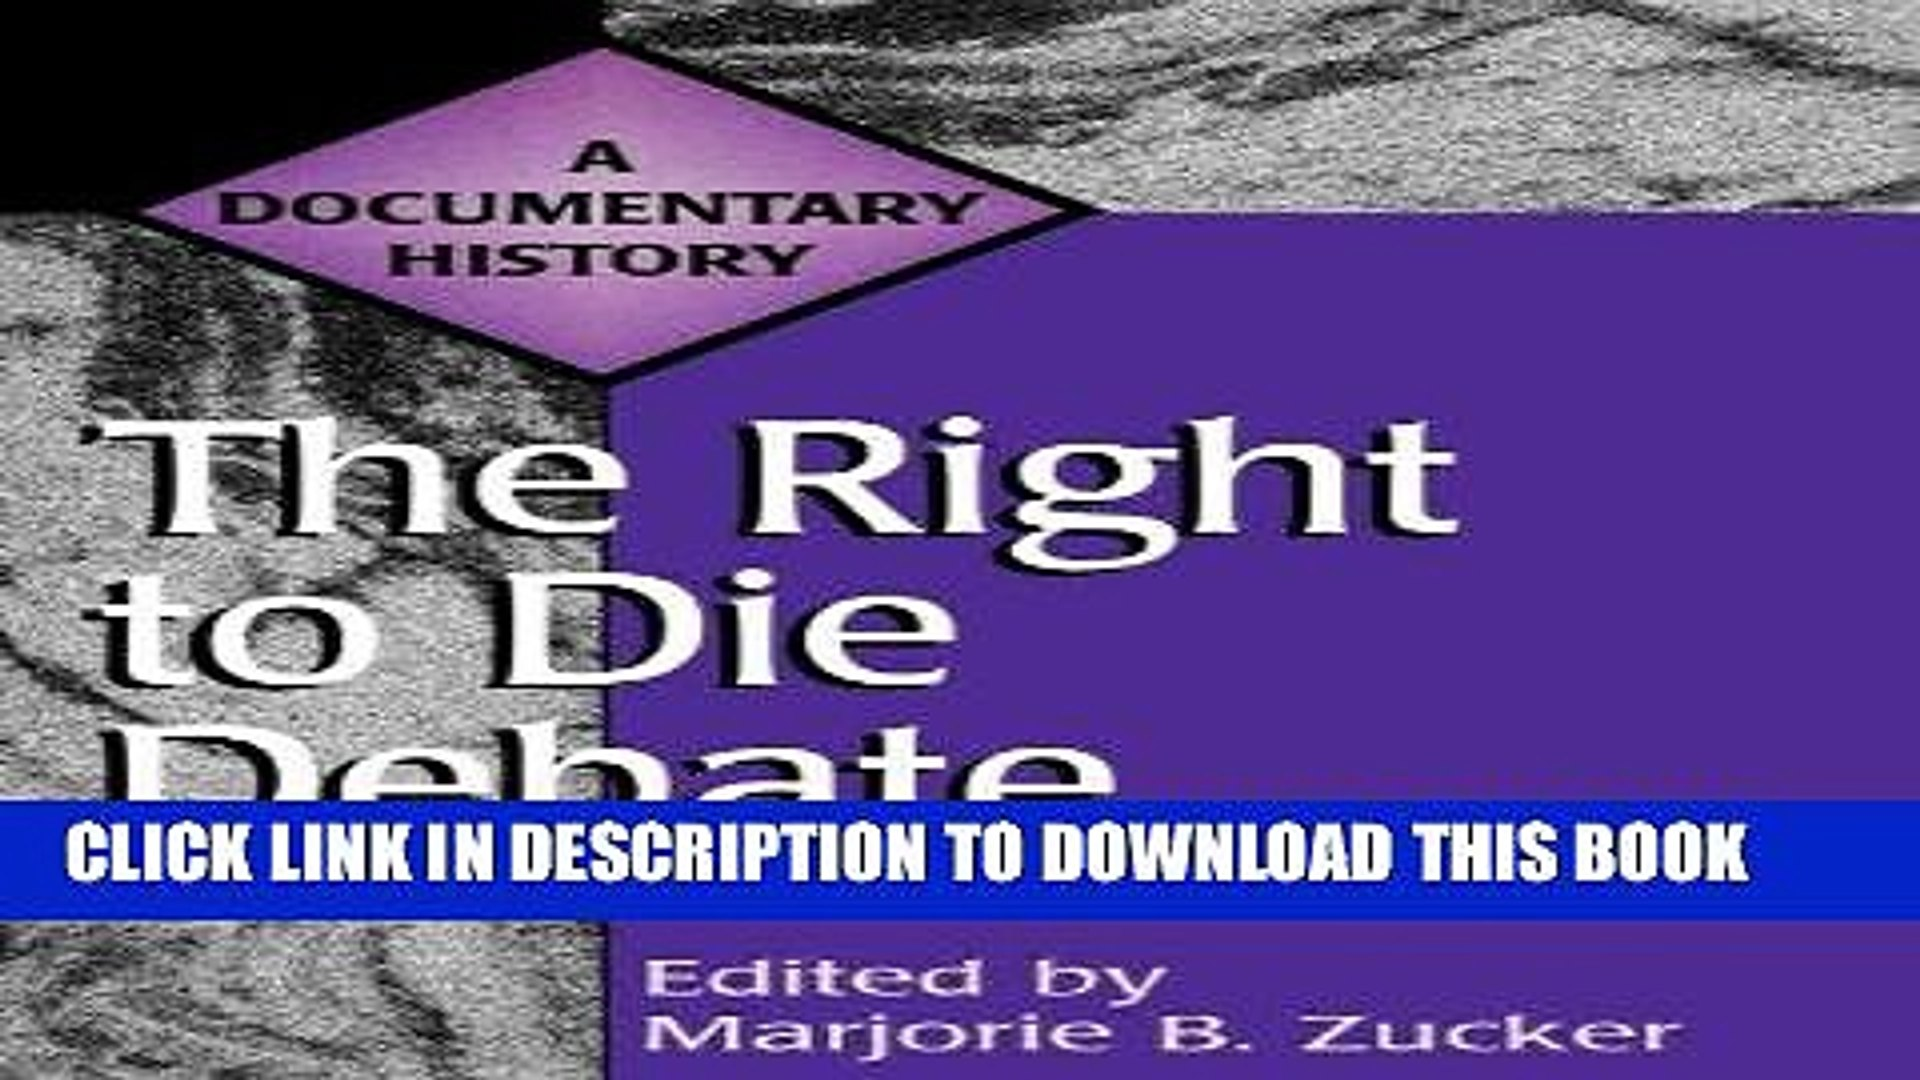 [FREE] EBOOK The Right to Die Debate: A Documentary History (Primary Documents in American History